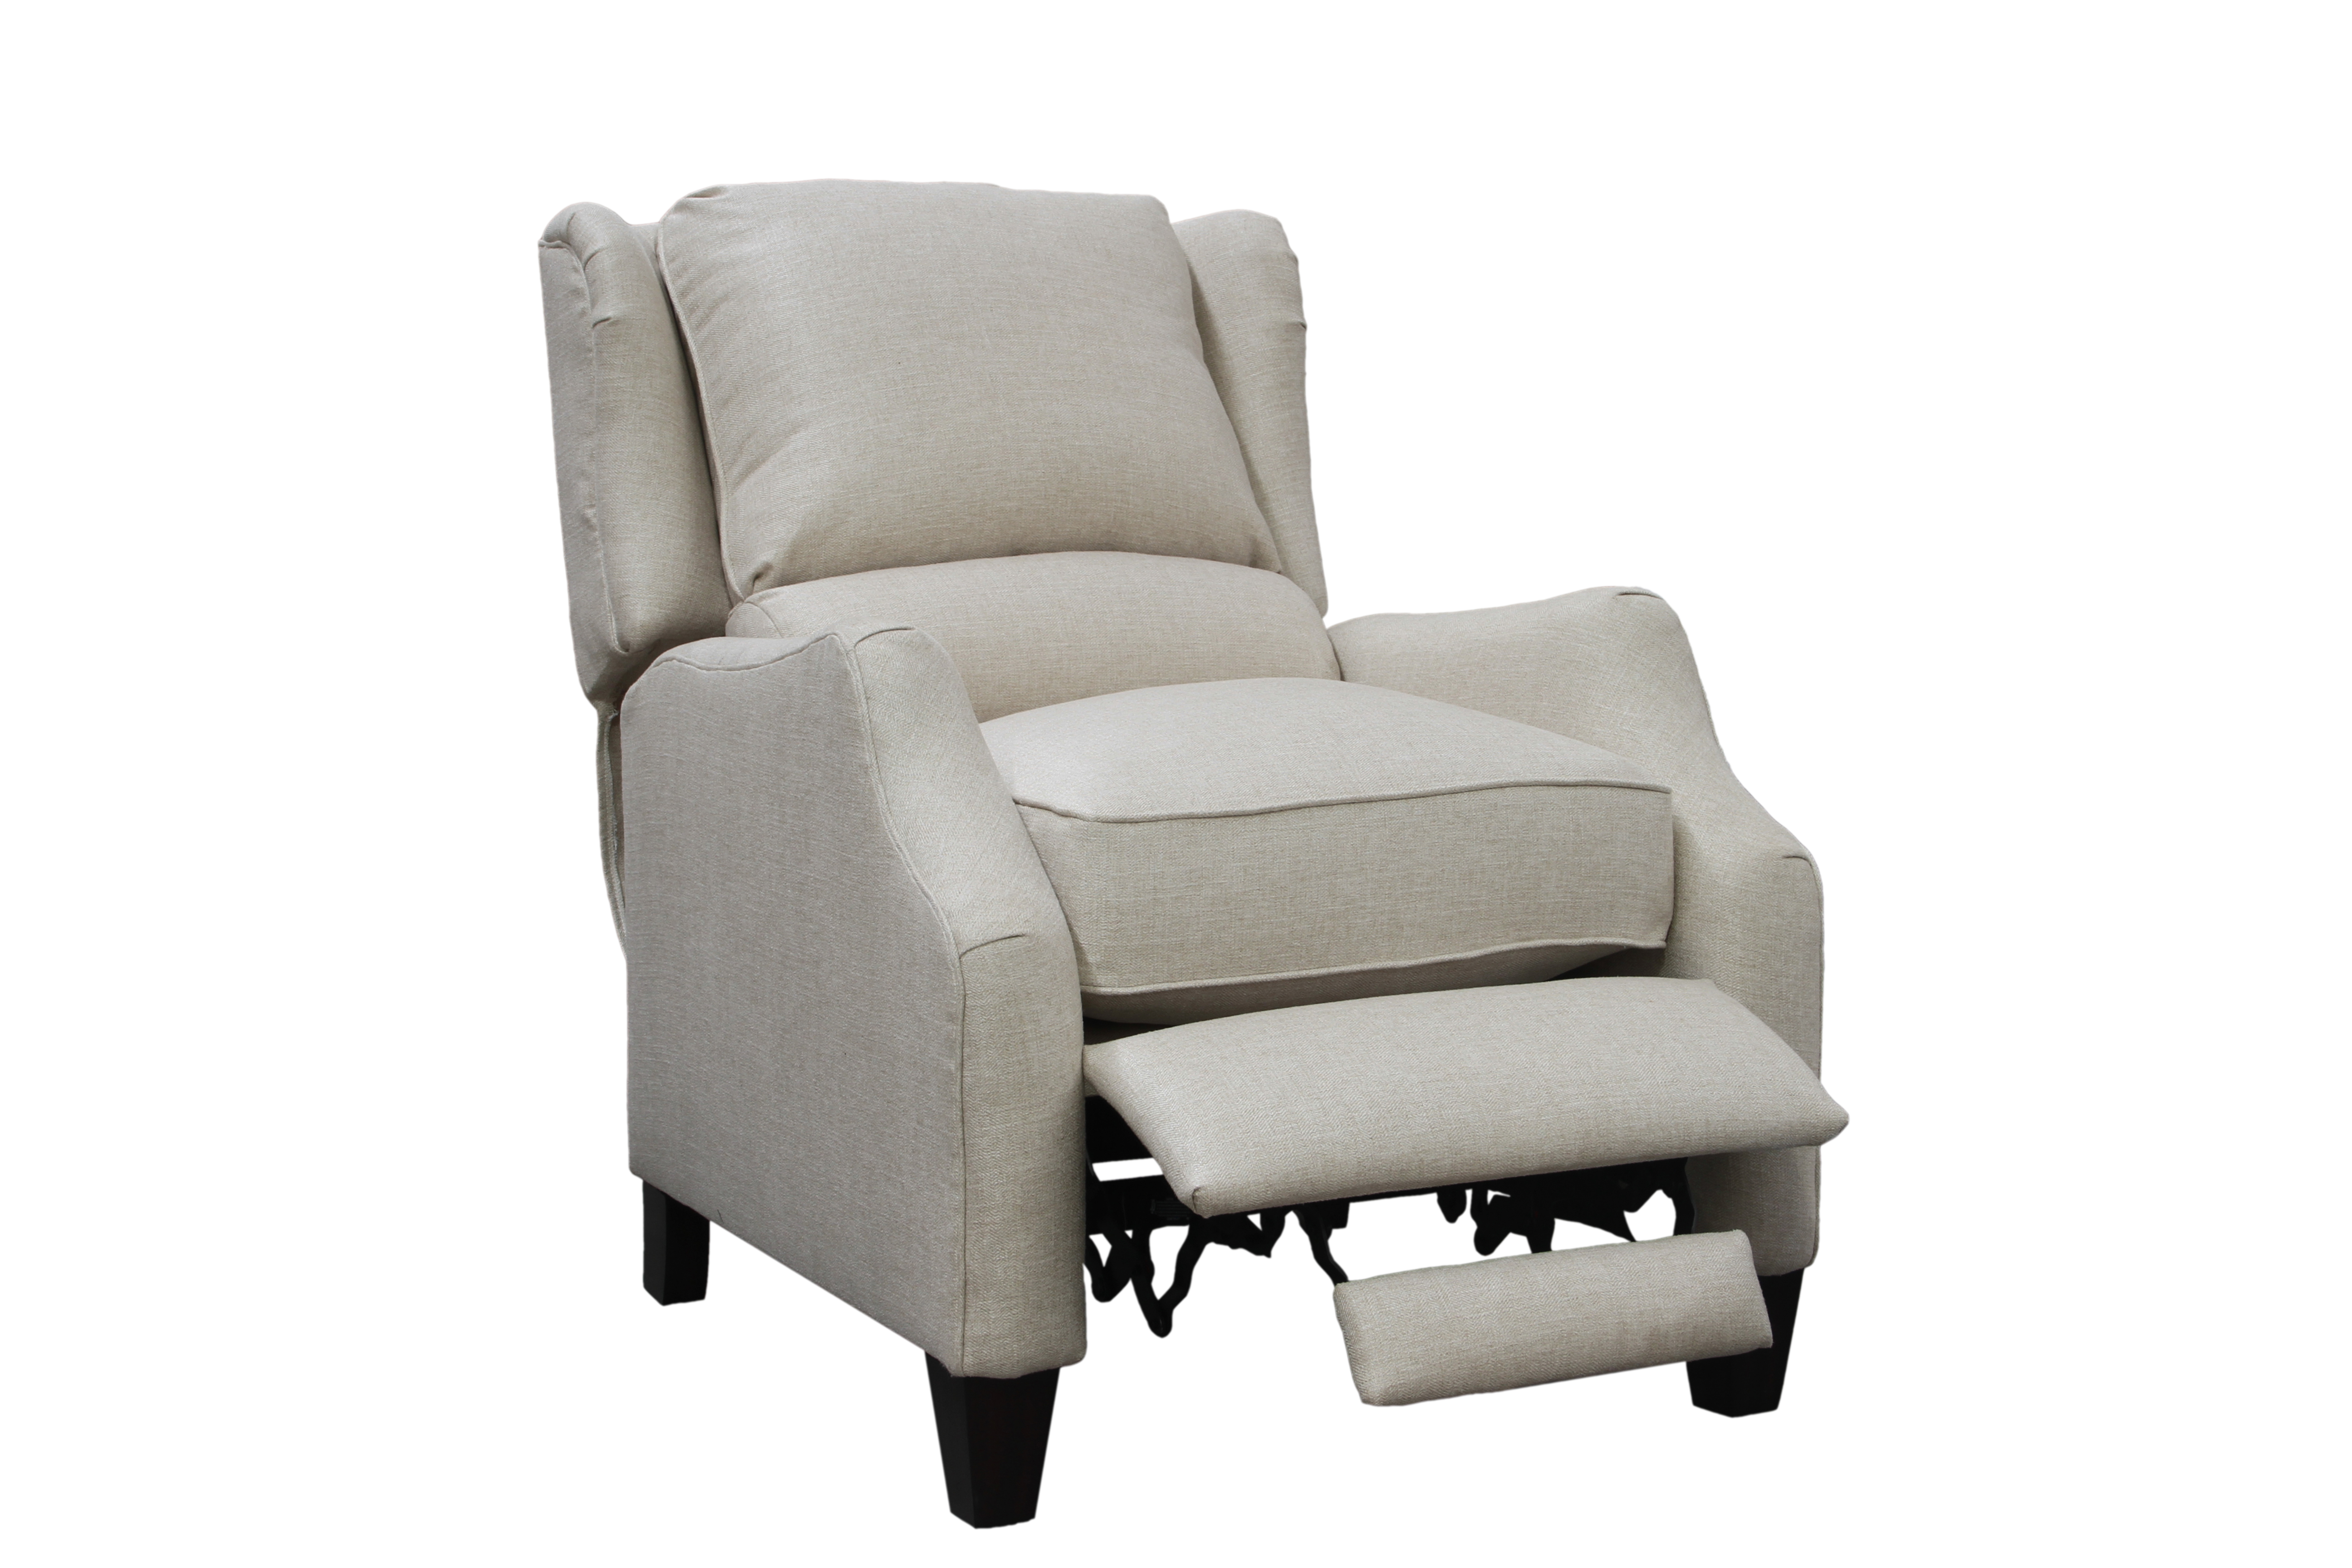 Amazing Berkeley Recliner In Stock Fast Free Shipping Sofas And Dailytribune Chair Design For Home Dailytribuneorg